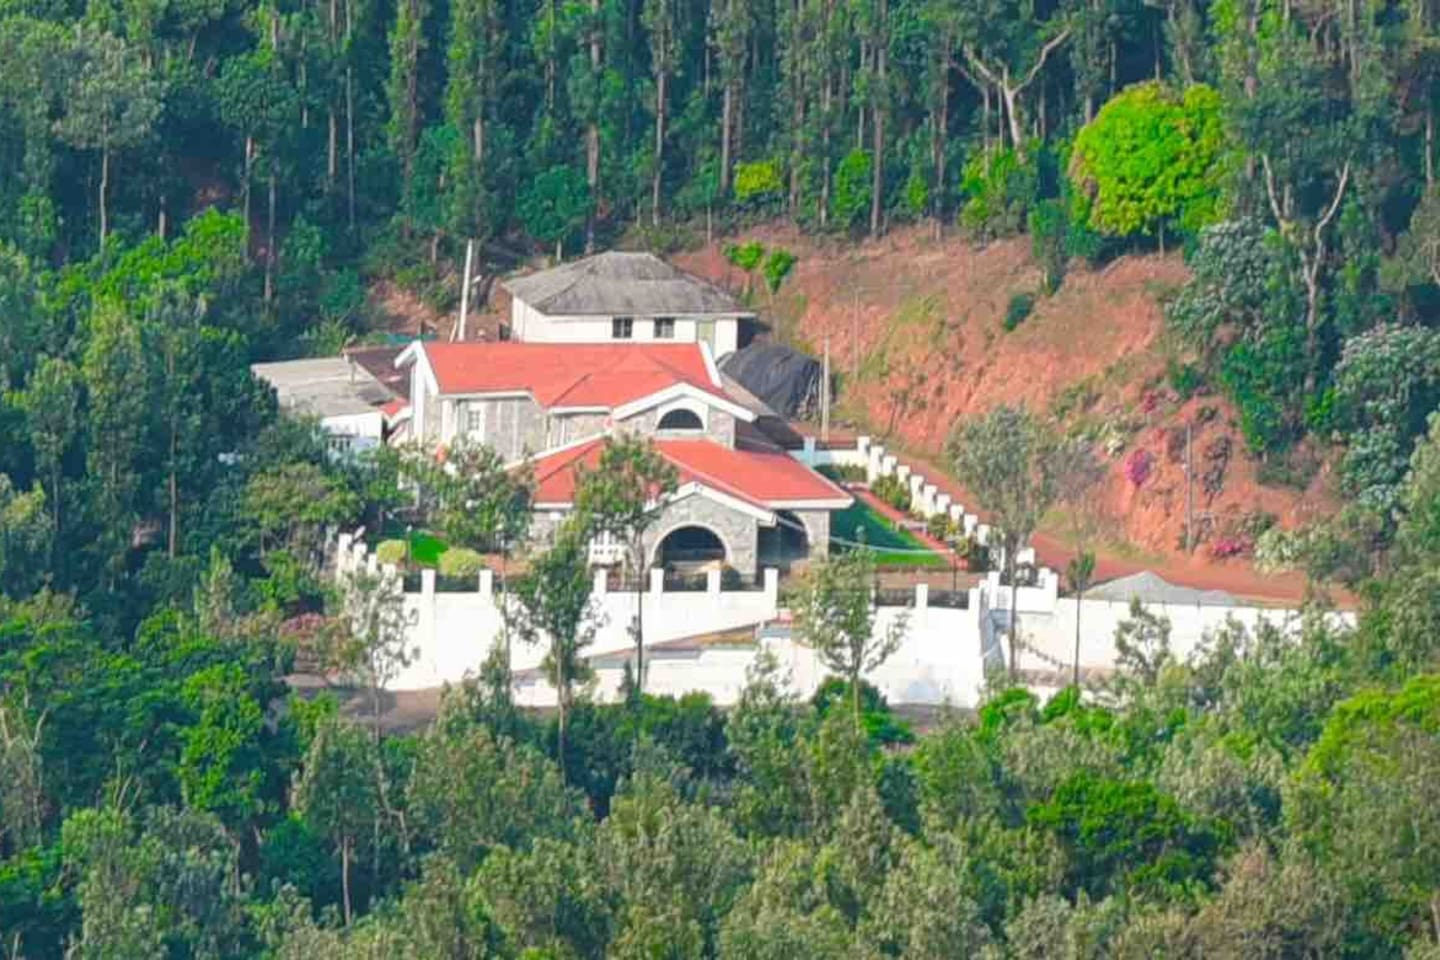 Aerial view of the home stay.